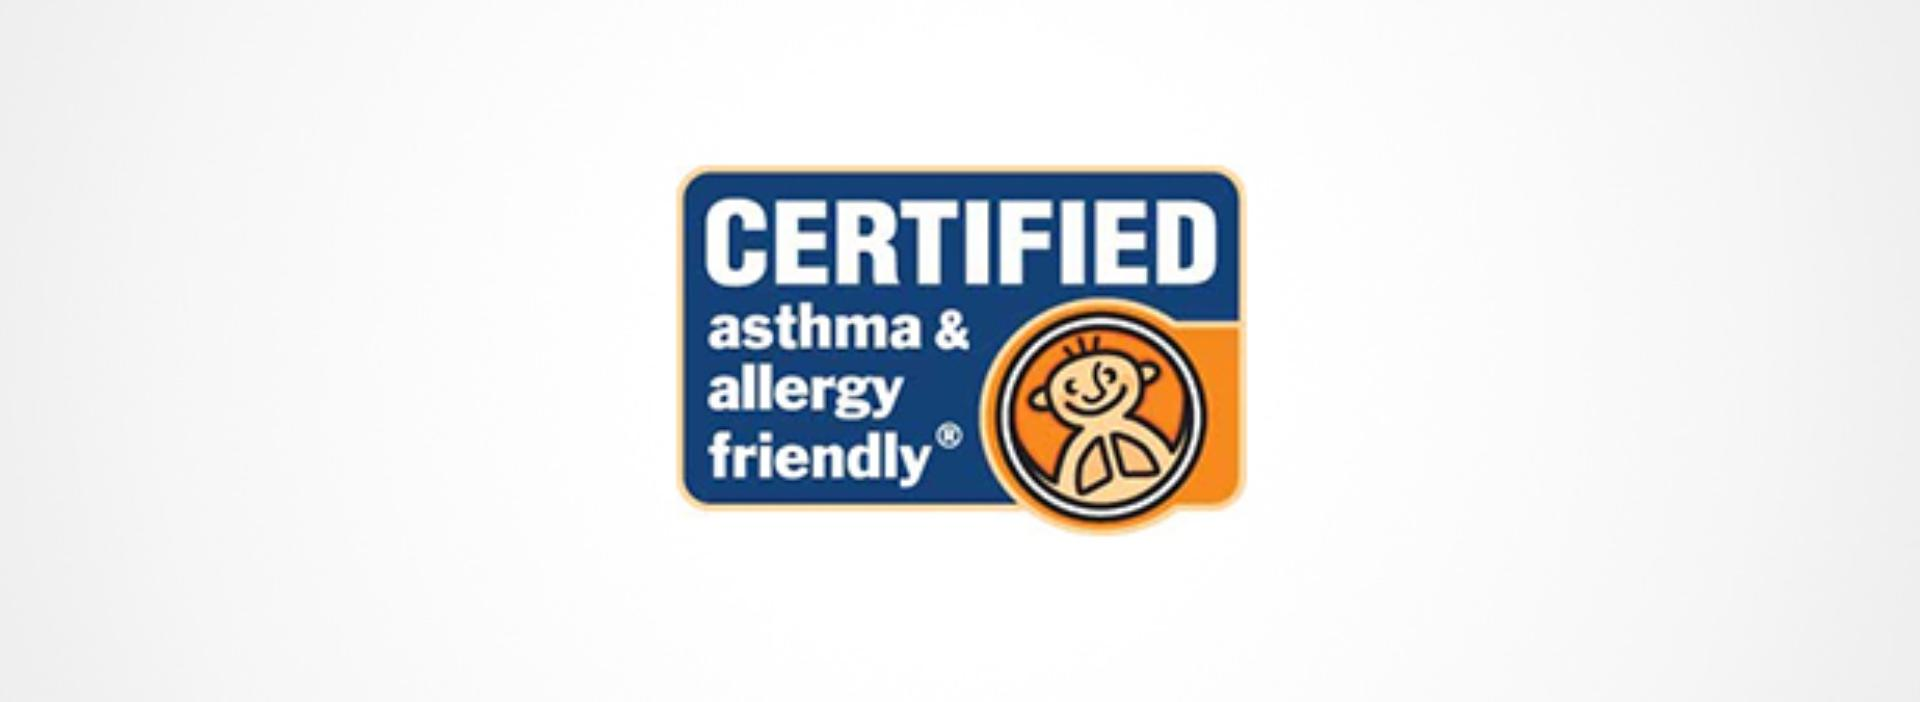 Asthma and allergy logo